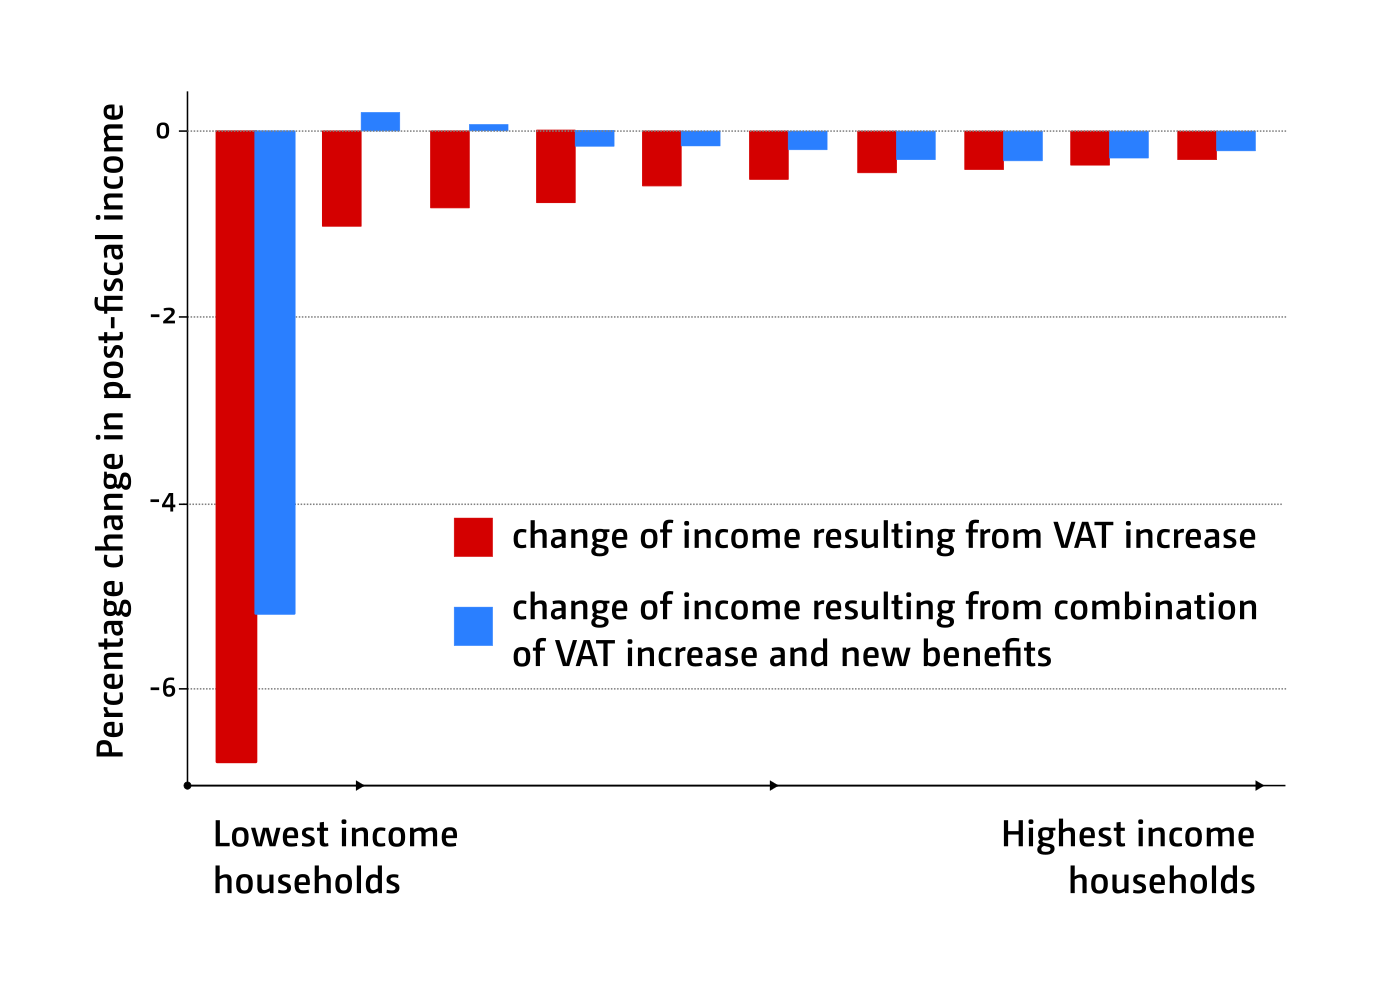 Figure 1: The impact of tax and benefit changes on household income in South Africa